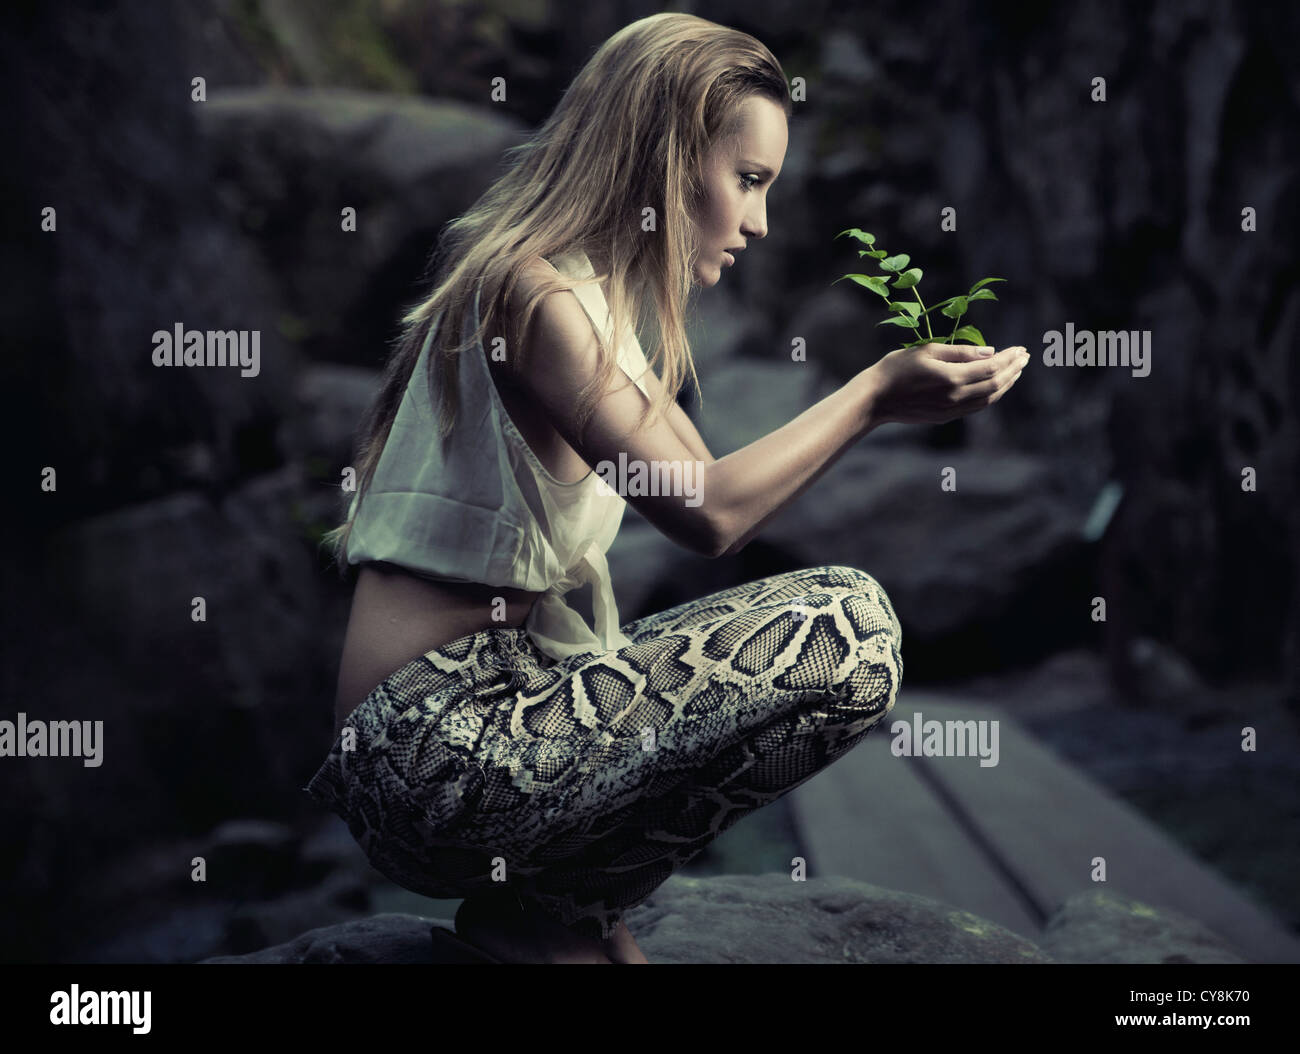 Beautiful young woman holding a plant - Stock Image